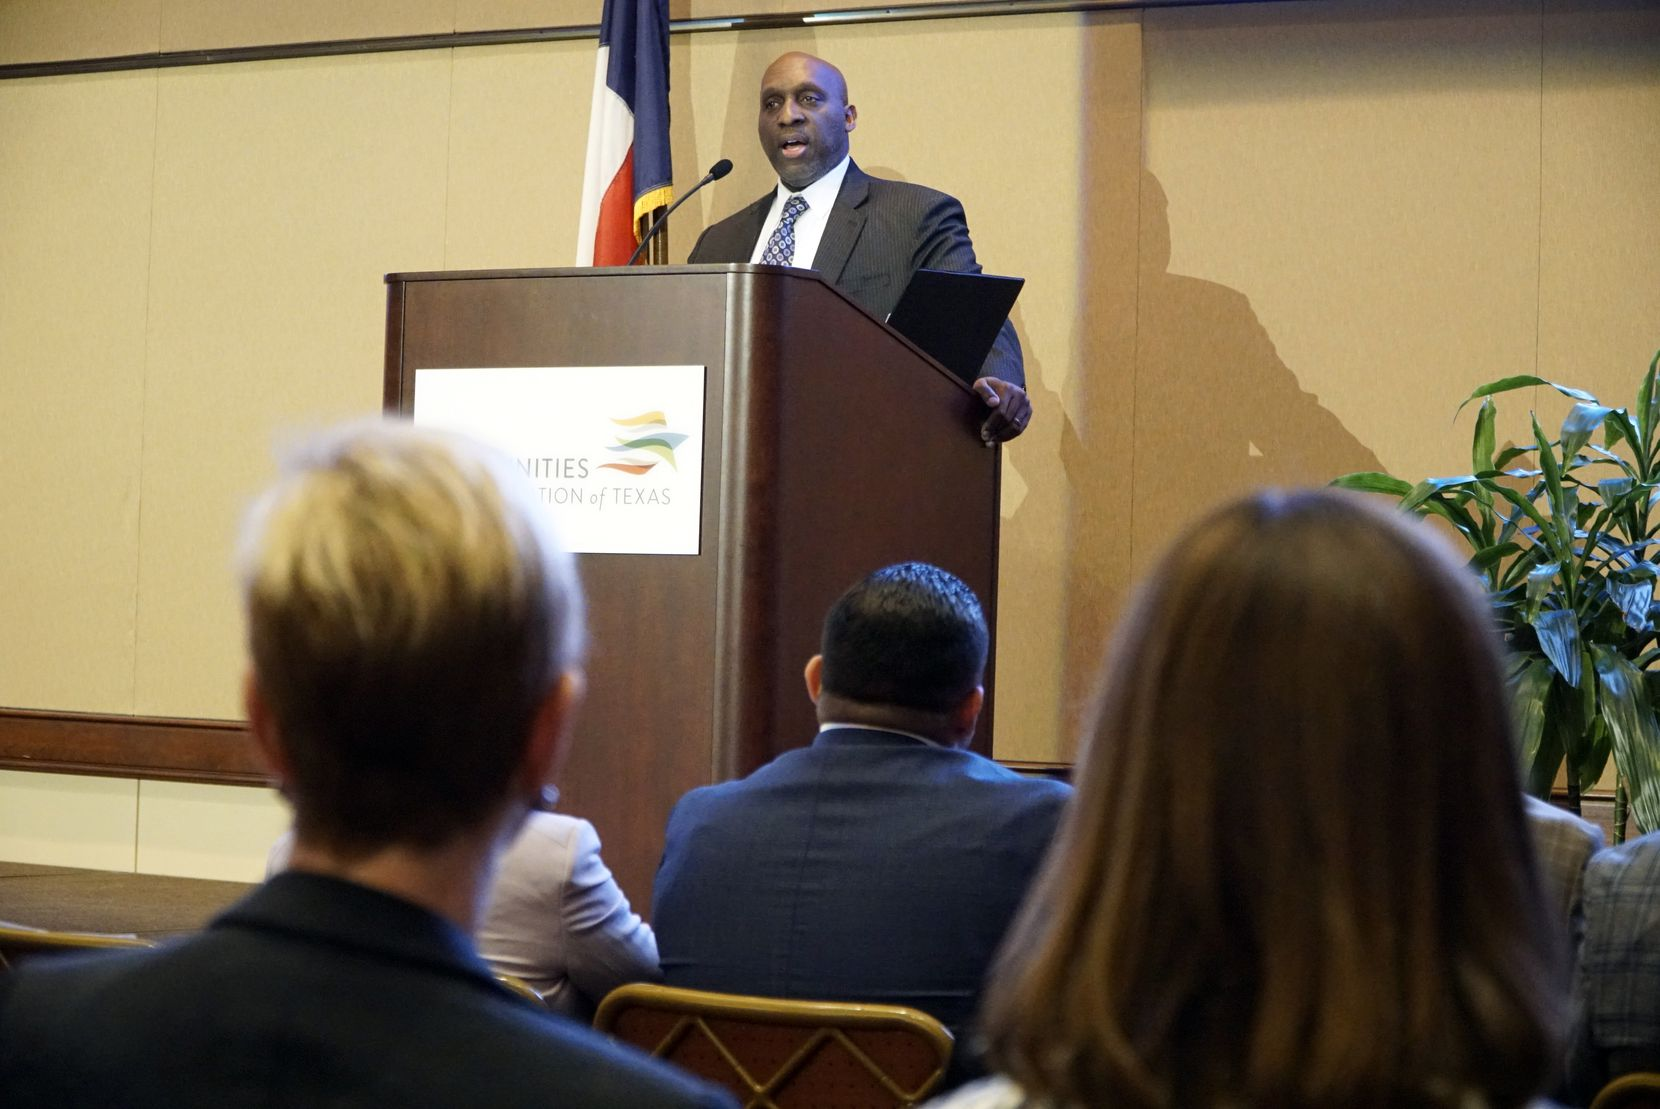 City Manager T.C. Broadnax speaks about the city's equity indicators project at the Communities Foundation of Texas in Dallas in 2019. Broadnax released details about employees being furloughed in a letter sent to city workers on May 8, 2020.